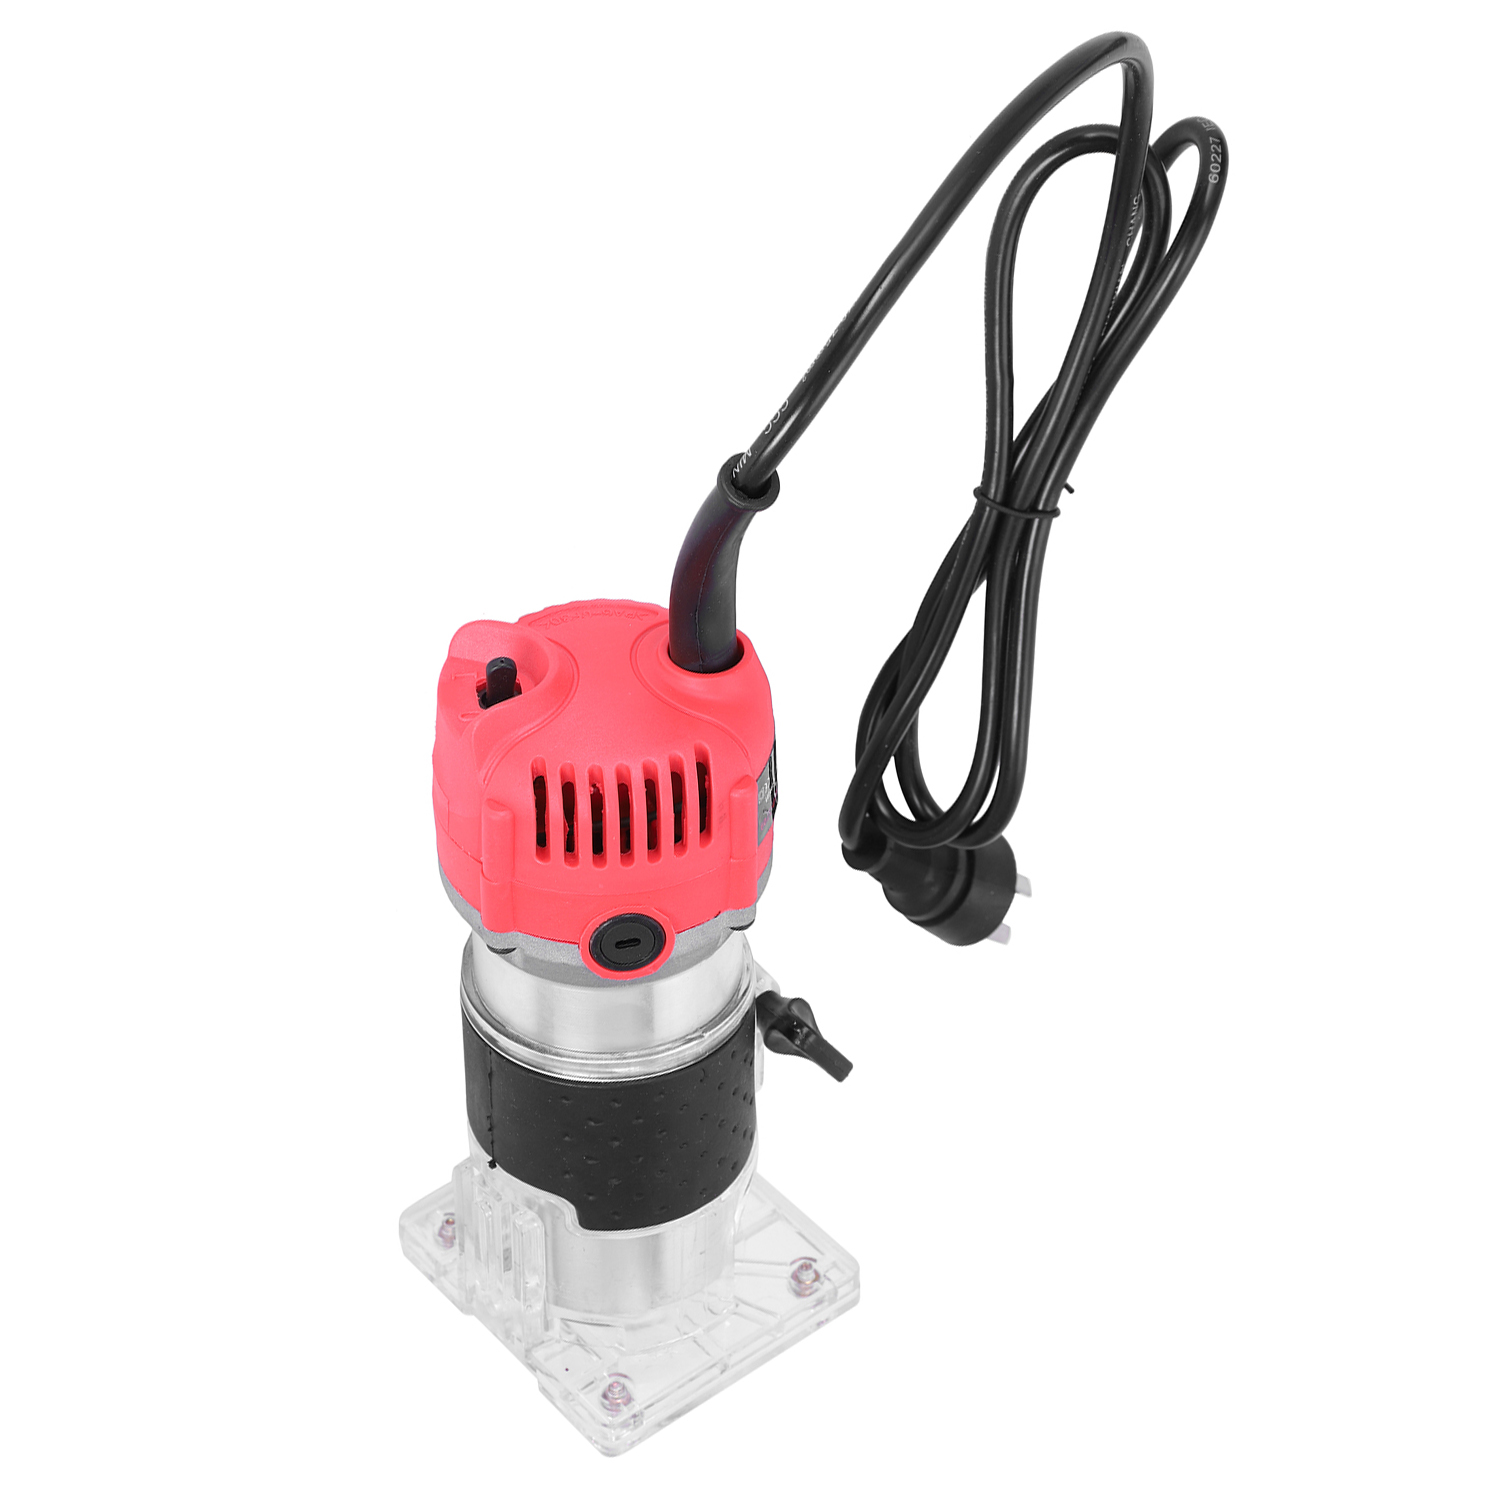 100% Quality New 620w 110v Wood Trim Router 6.35mm Collection Diameter Electric Manual Trimmer Woodworking Laminated Palm Router Woodworking Year-End Bargain Sale